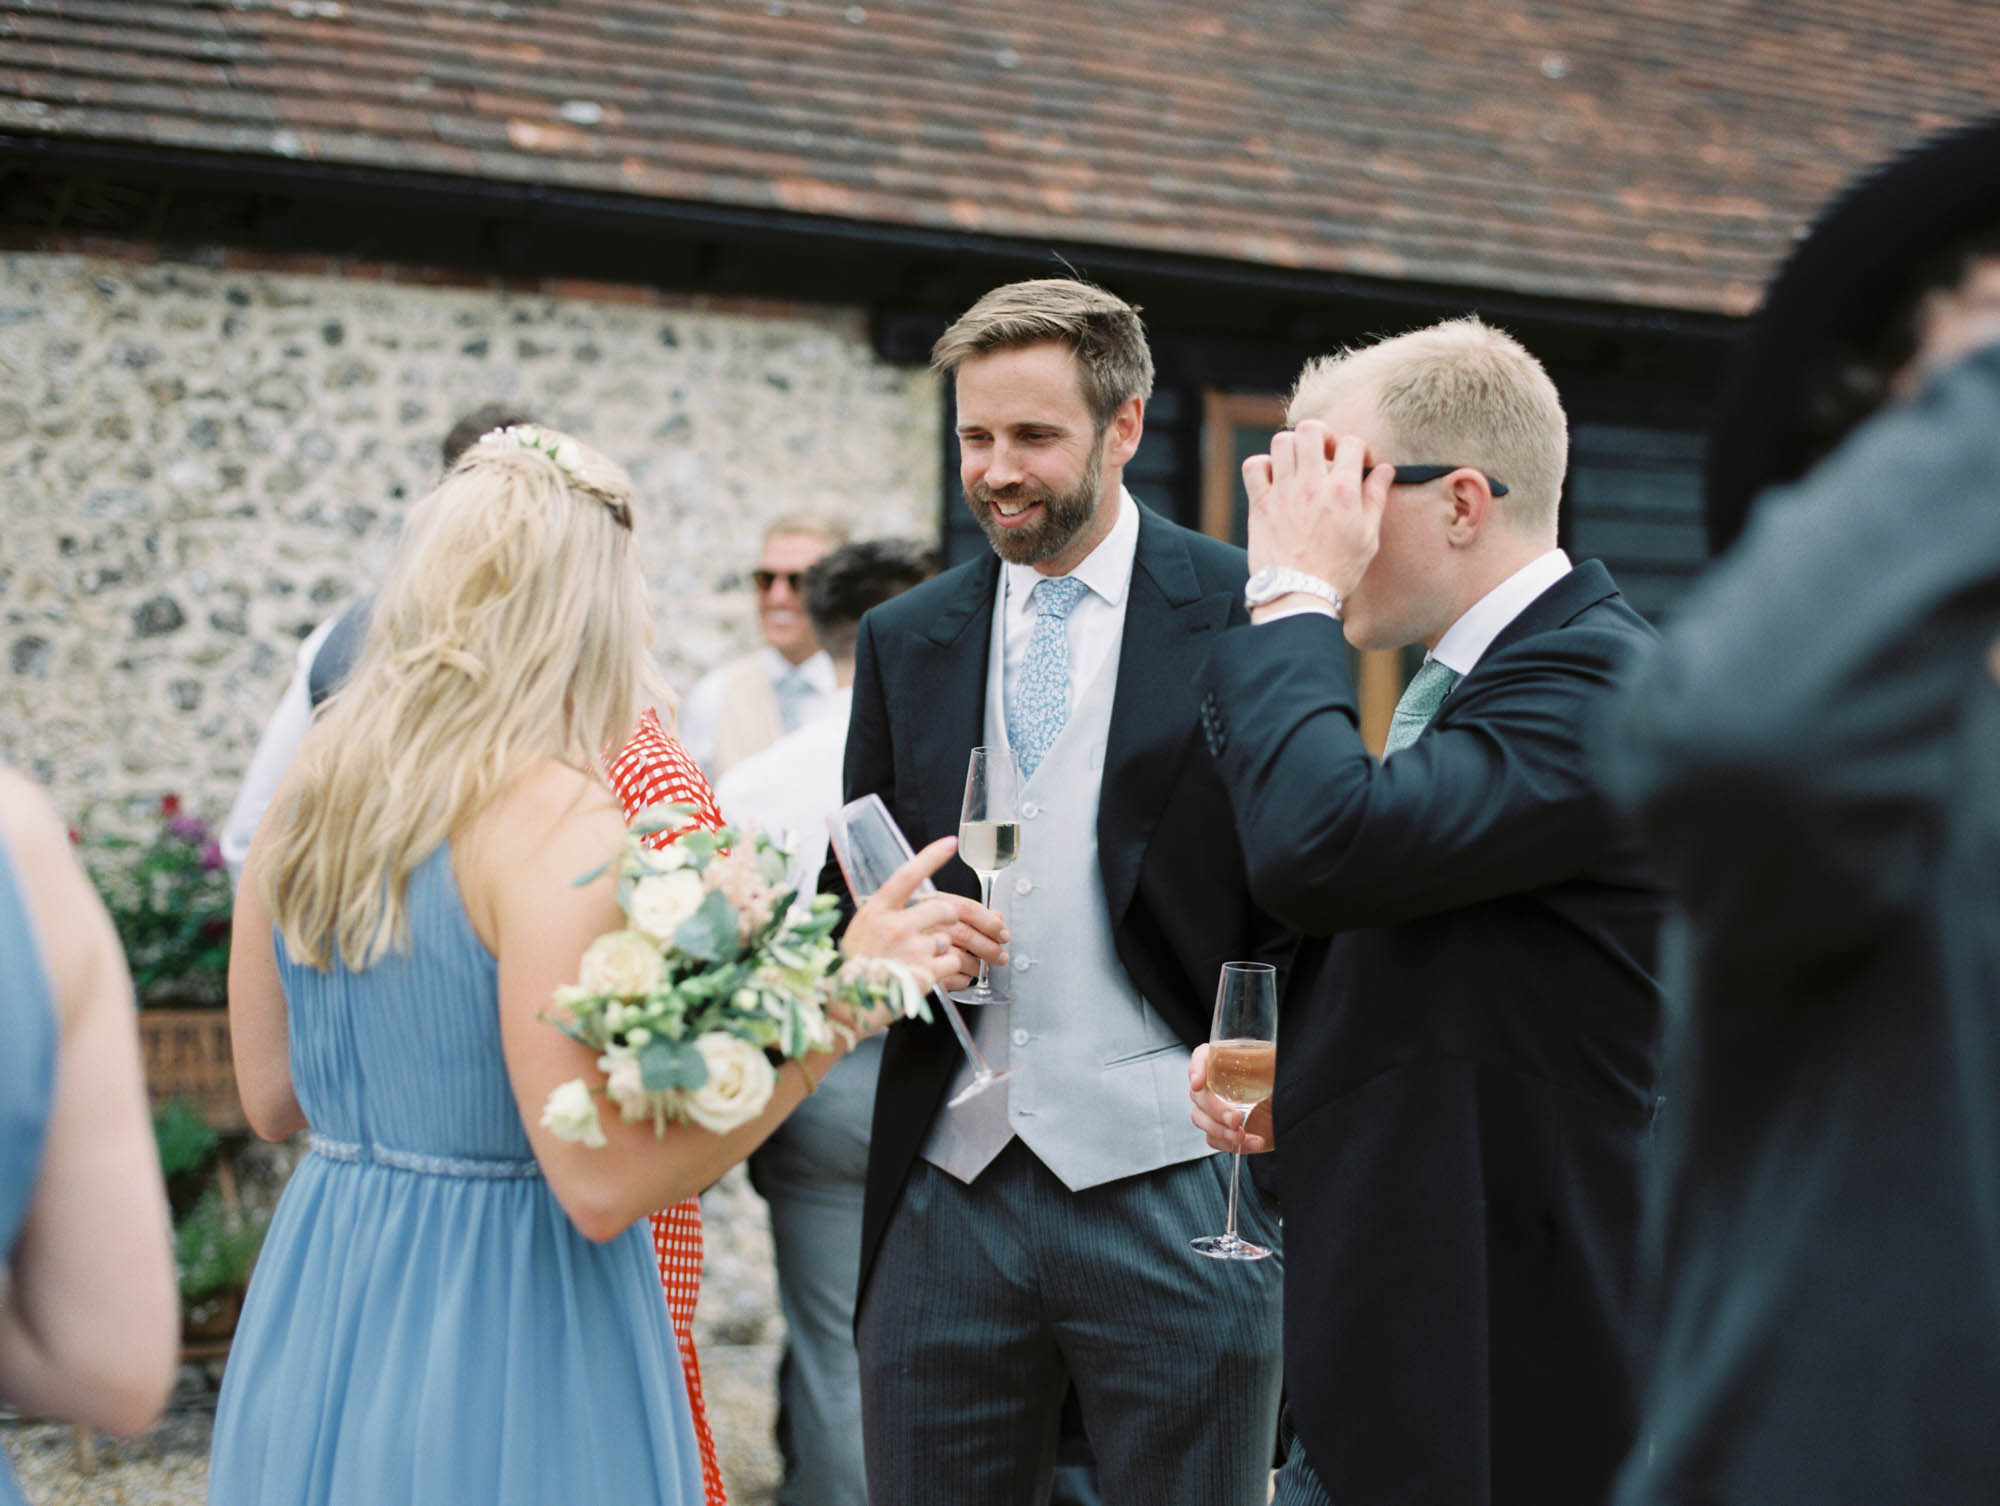 Sophisticated wedding guests mingling outside at Sussex Garden Wedding